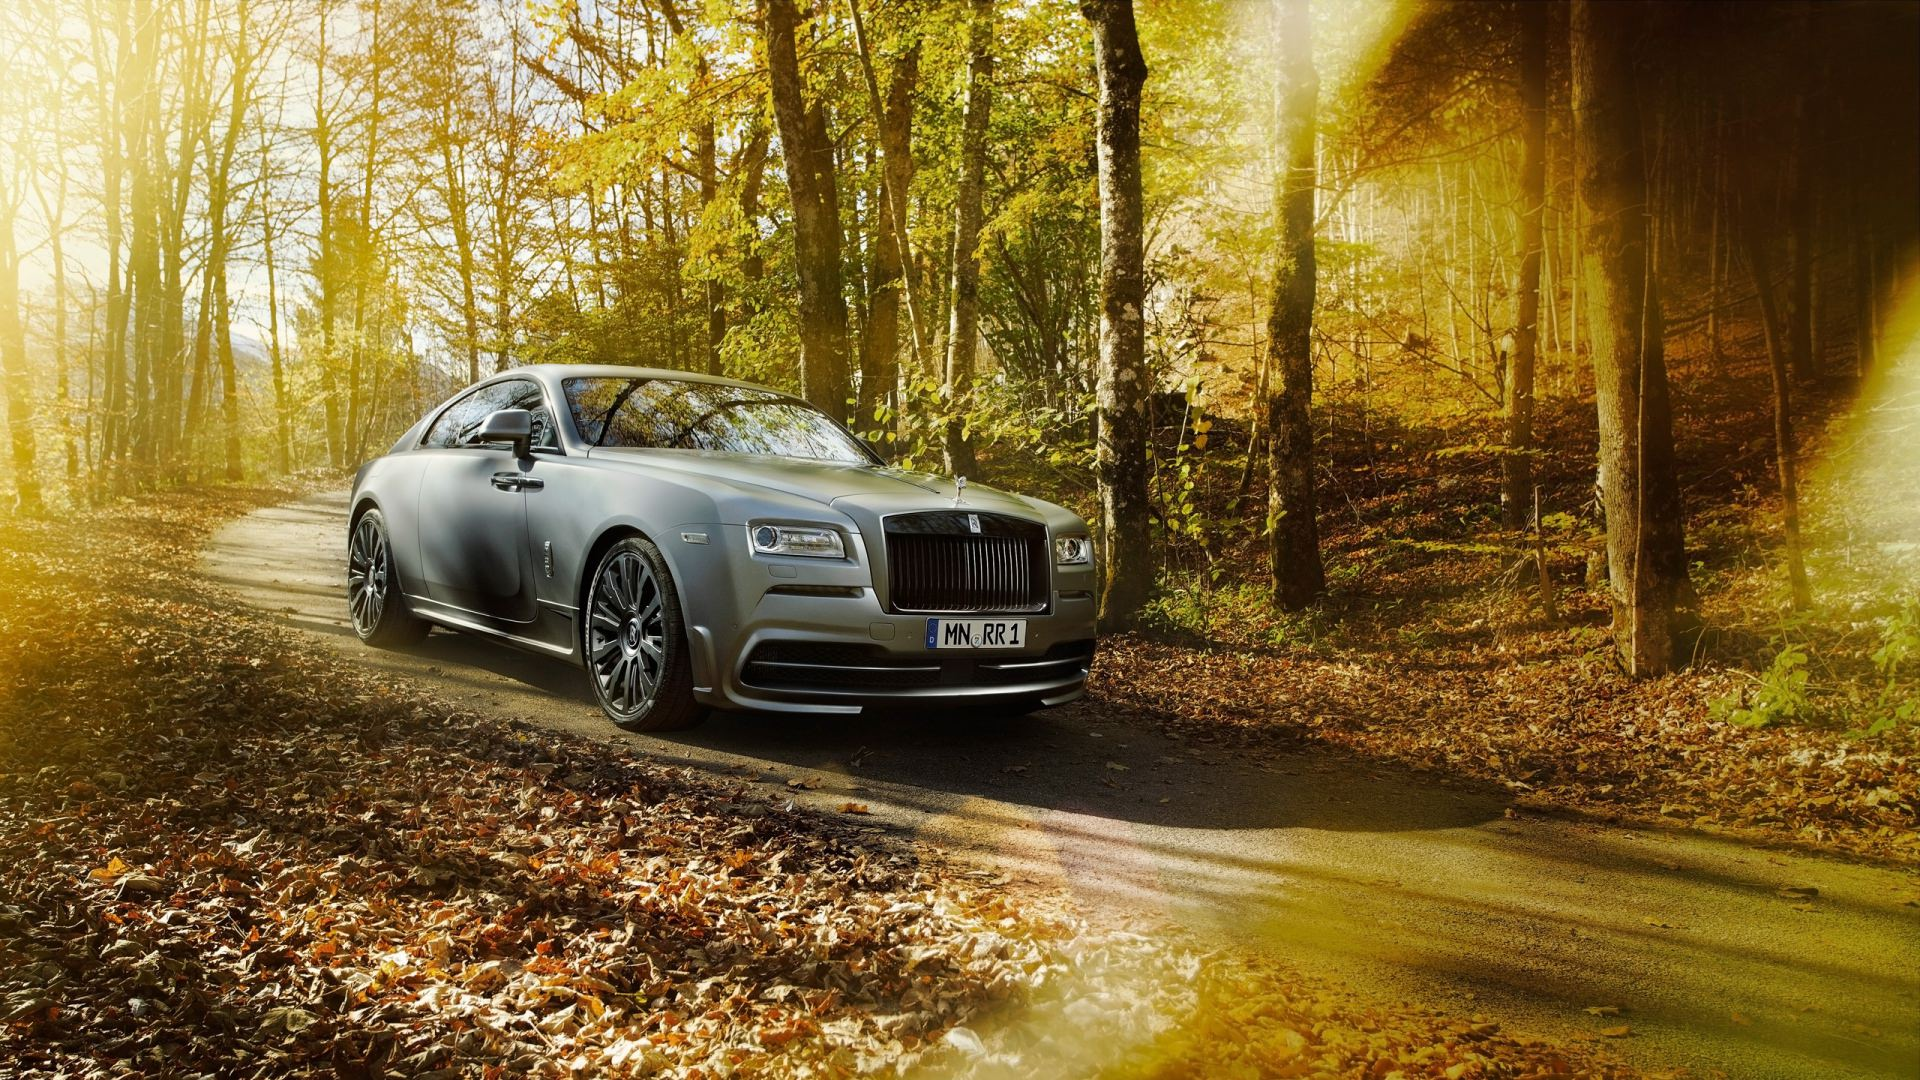 Parked Rolls Royce Car Background